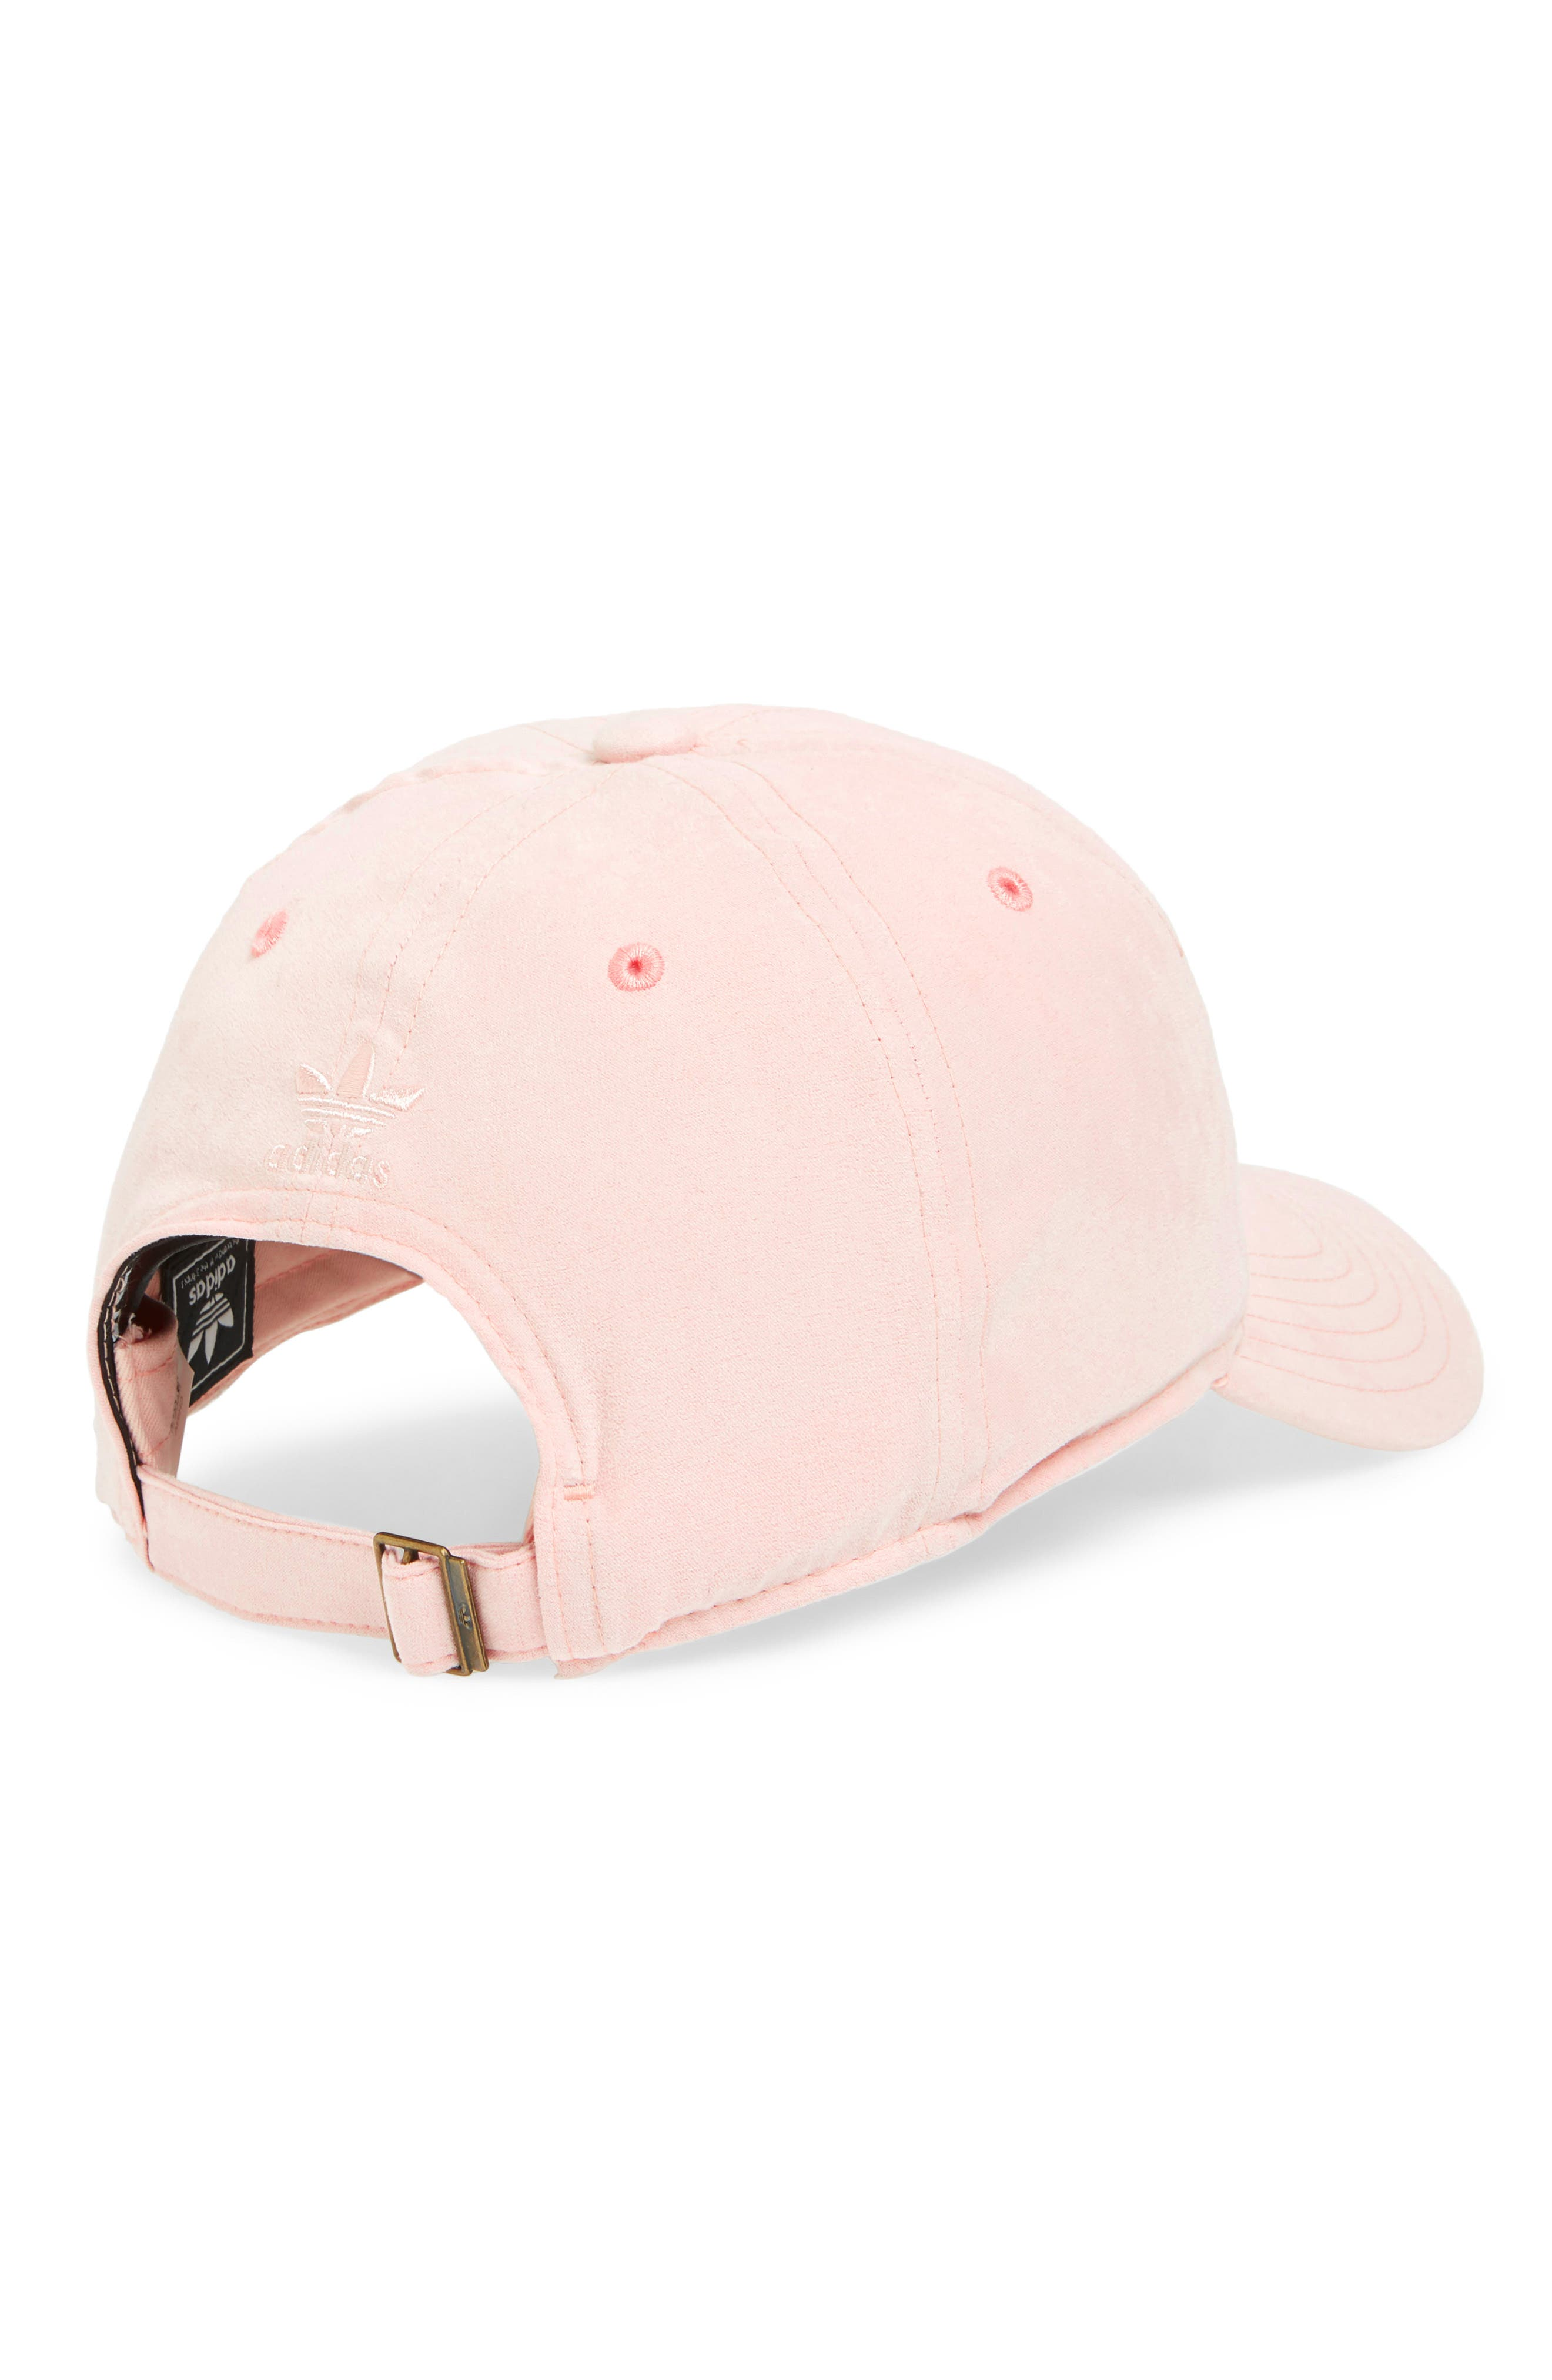 Relaxed Plus Ball Cap,                             Alternate thumbnail 2, color,                             BLUSH PINK